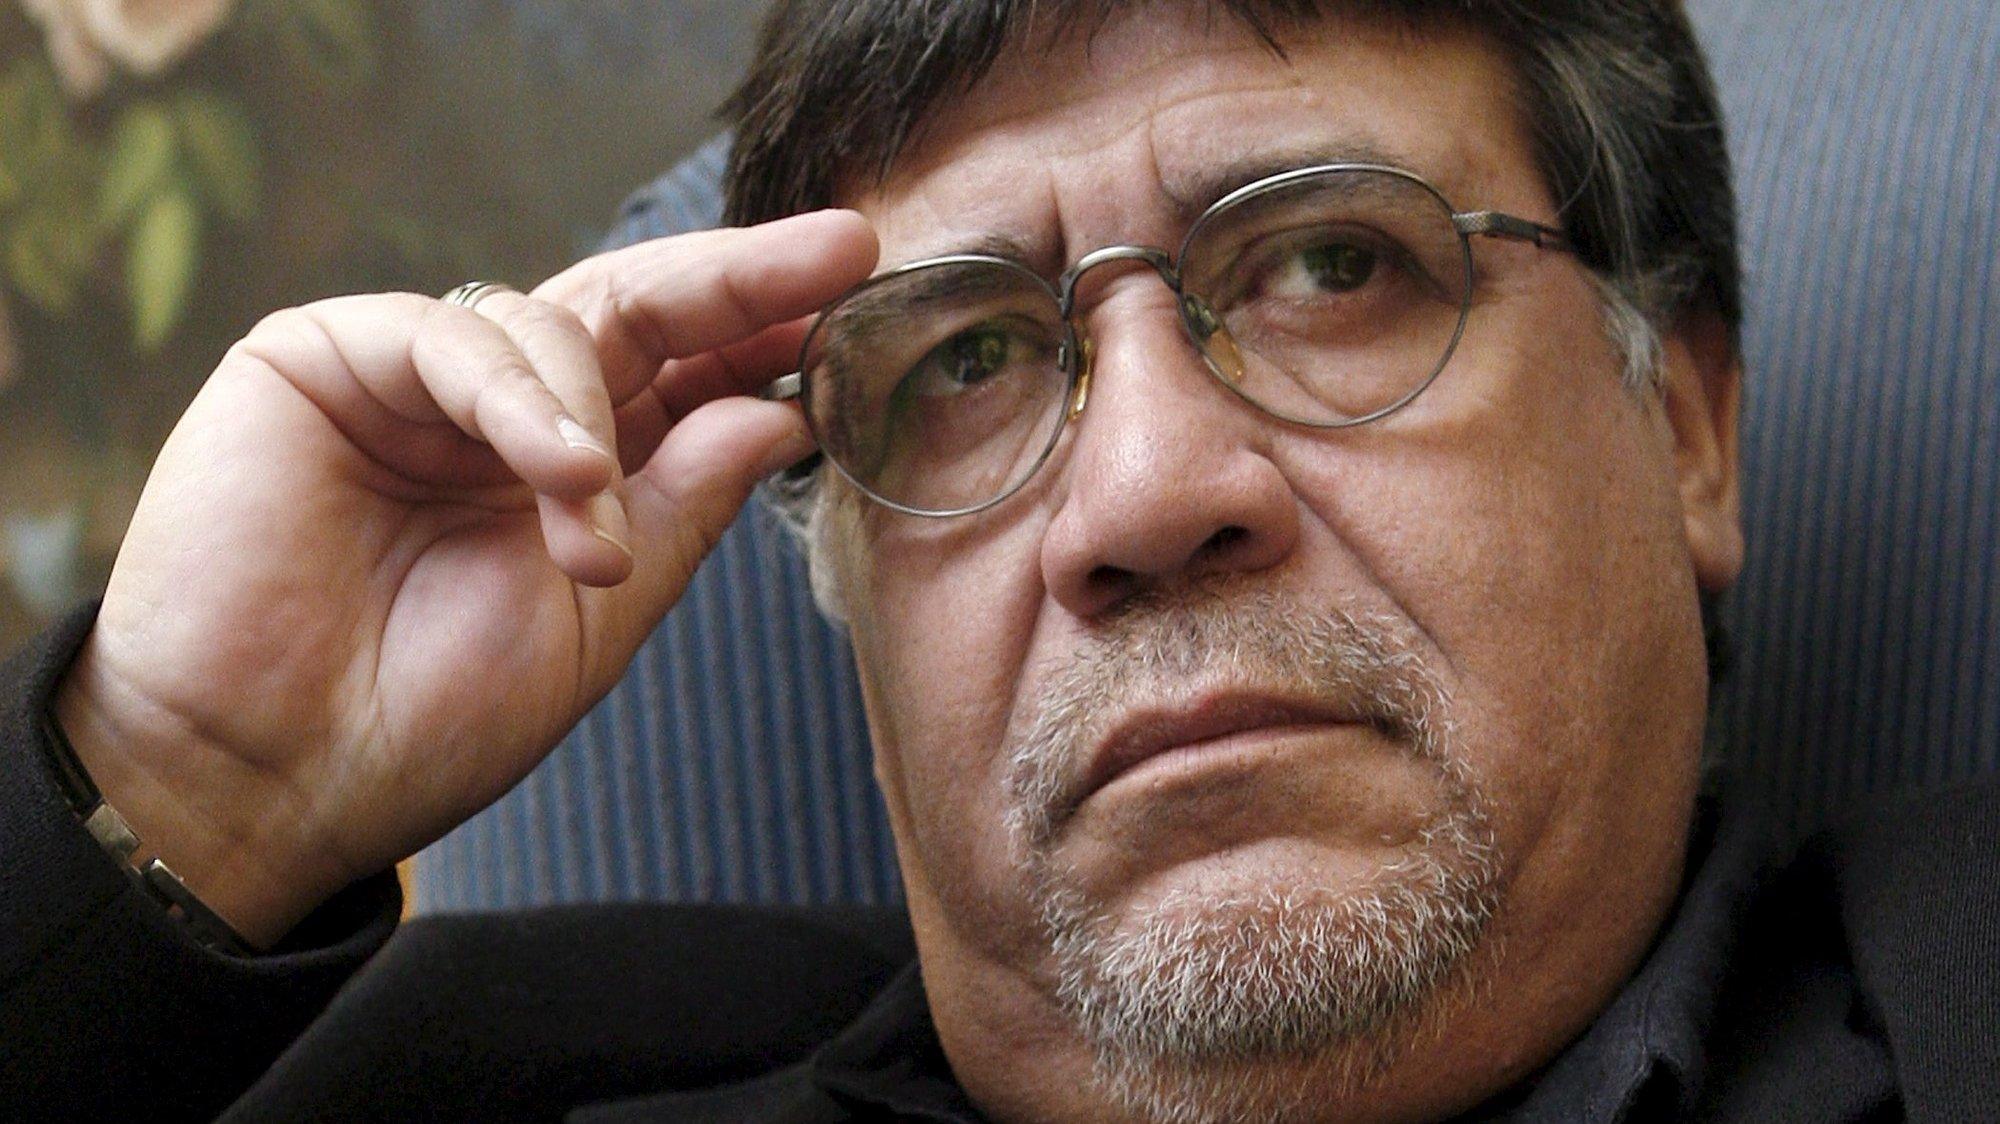 epa08365801 (FILE) - Chilean author Luis Sepulveda gestures during an interview in Madrid, Spain, 25 March 2009 (reissued on 16 April 2020). According to media reports on 16 April 2020 Luis Sepulveda has died aged 70 in Oviedo, Spain, for the consequences of the SARS-CoV-2 coronavirus which causes the COVID-19 disease.  EPA/CHEMA MOYA